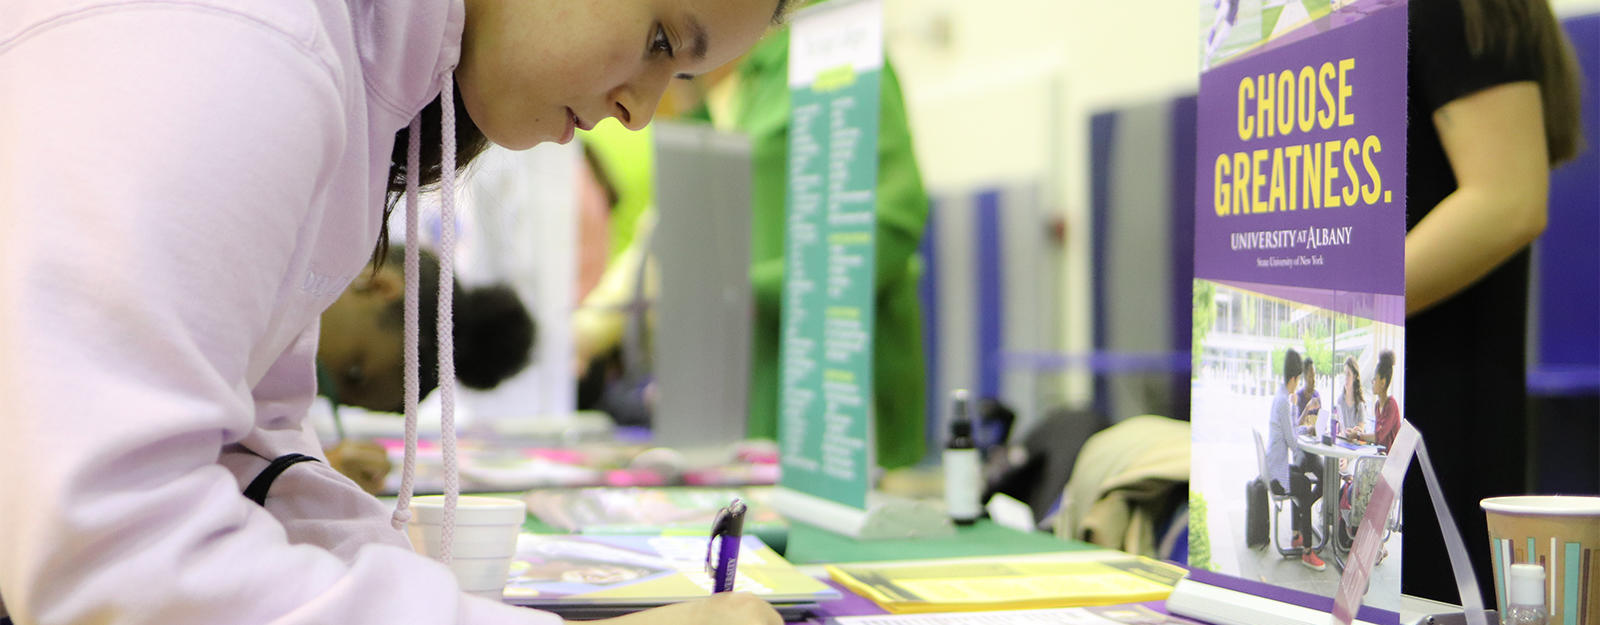 Student filling out paperwork at a SUNY Albany table during a college fair.